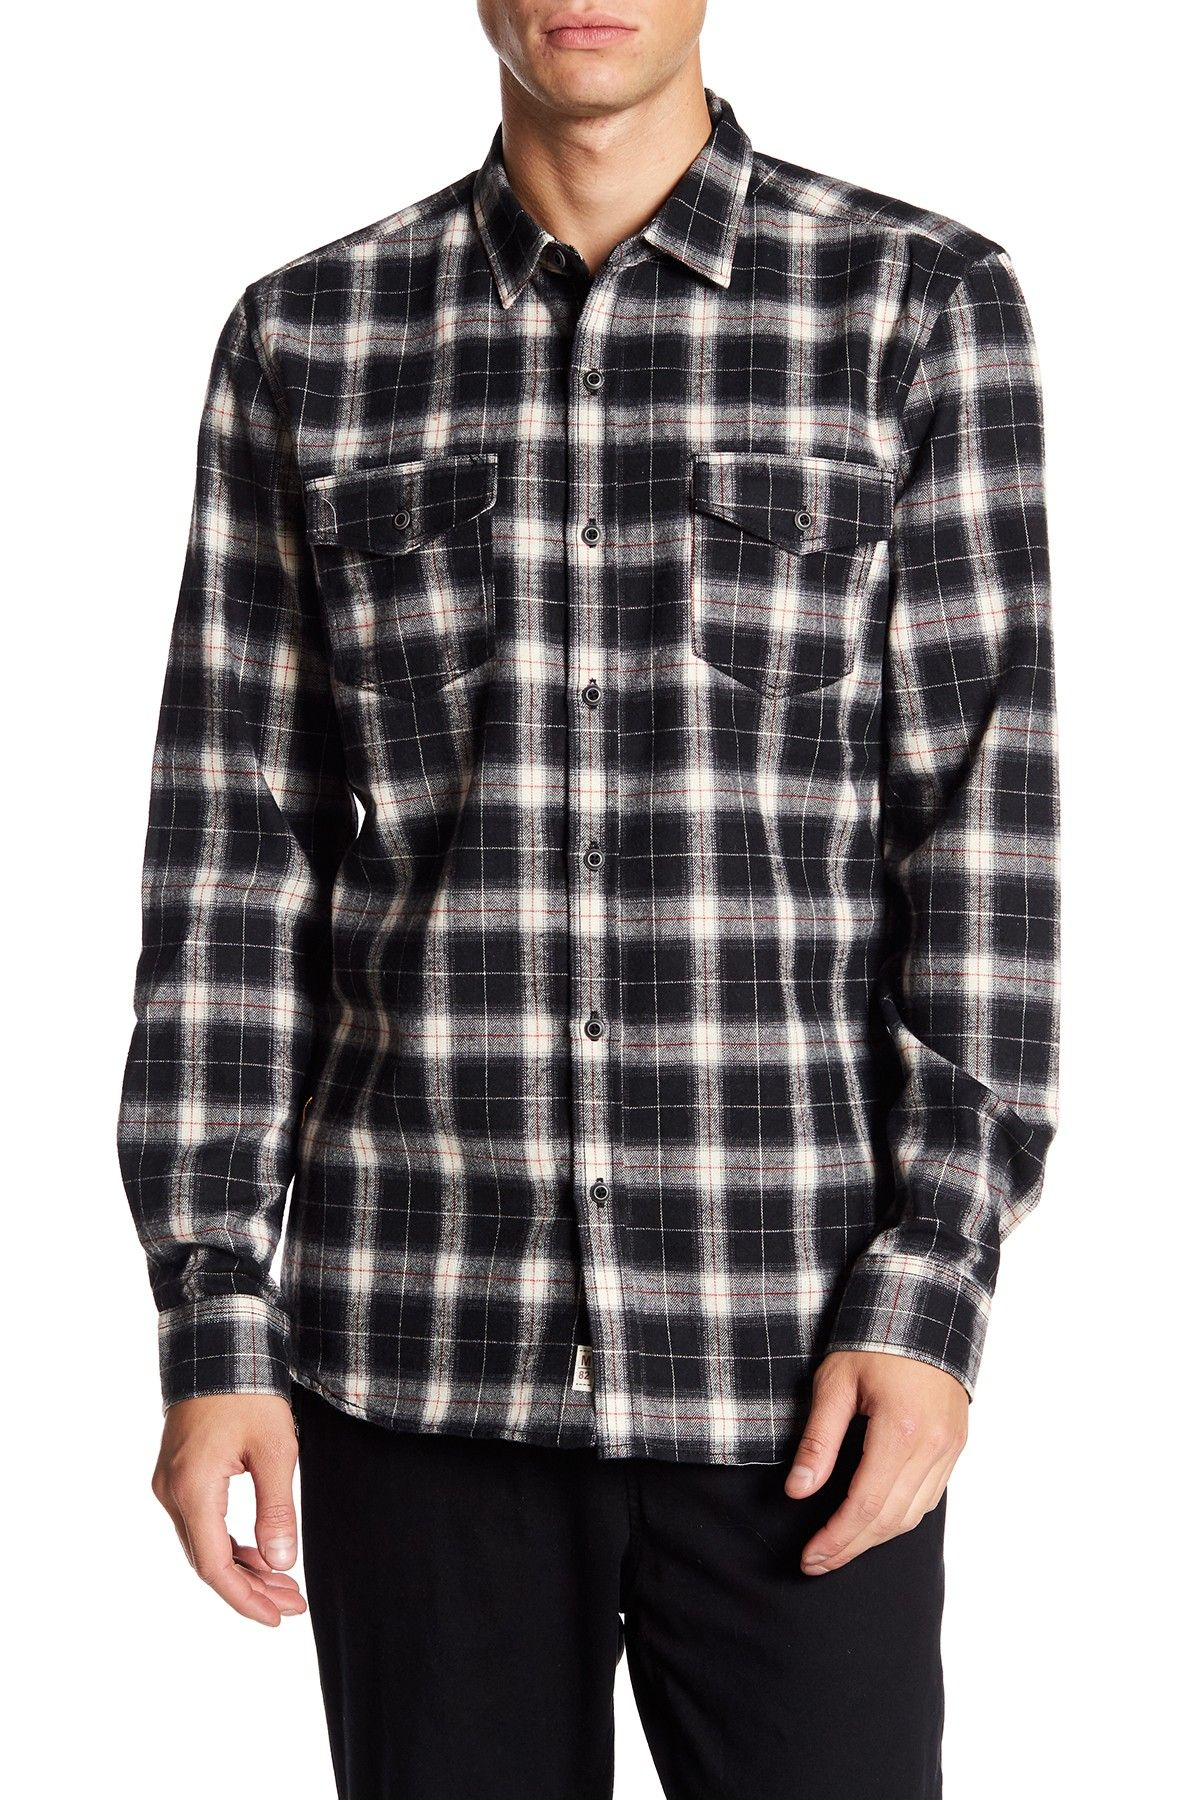 9c0c337bde Micros Over Long Sleeve Woven Flannel Plaid Regular Fit Shirt | Bun ...